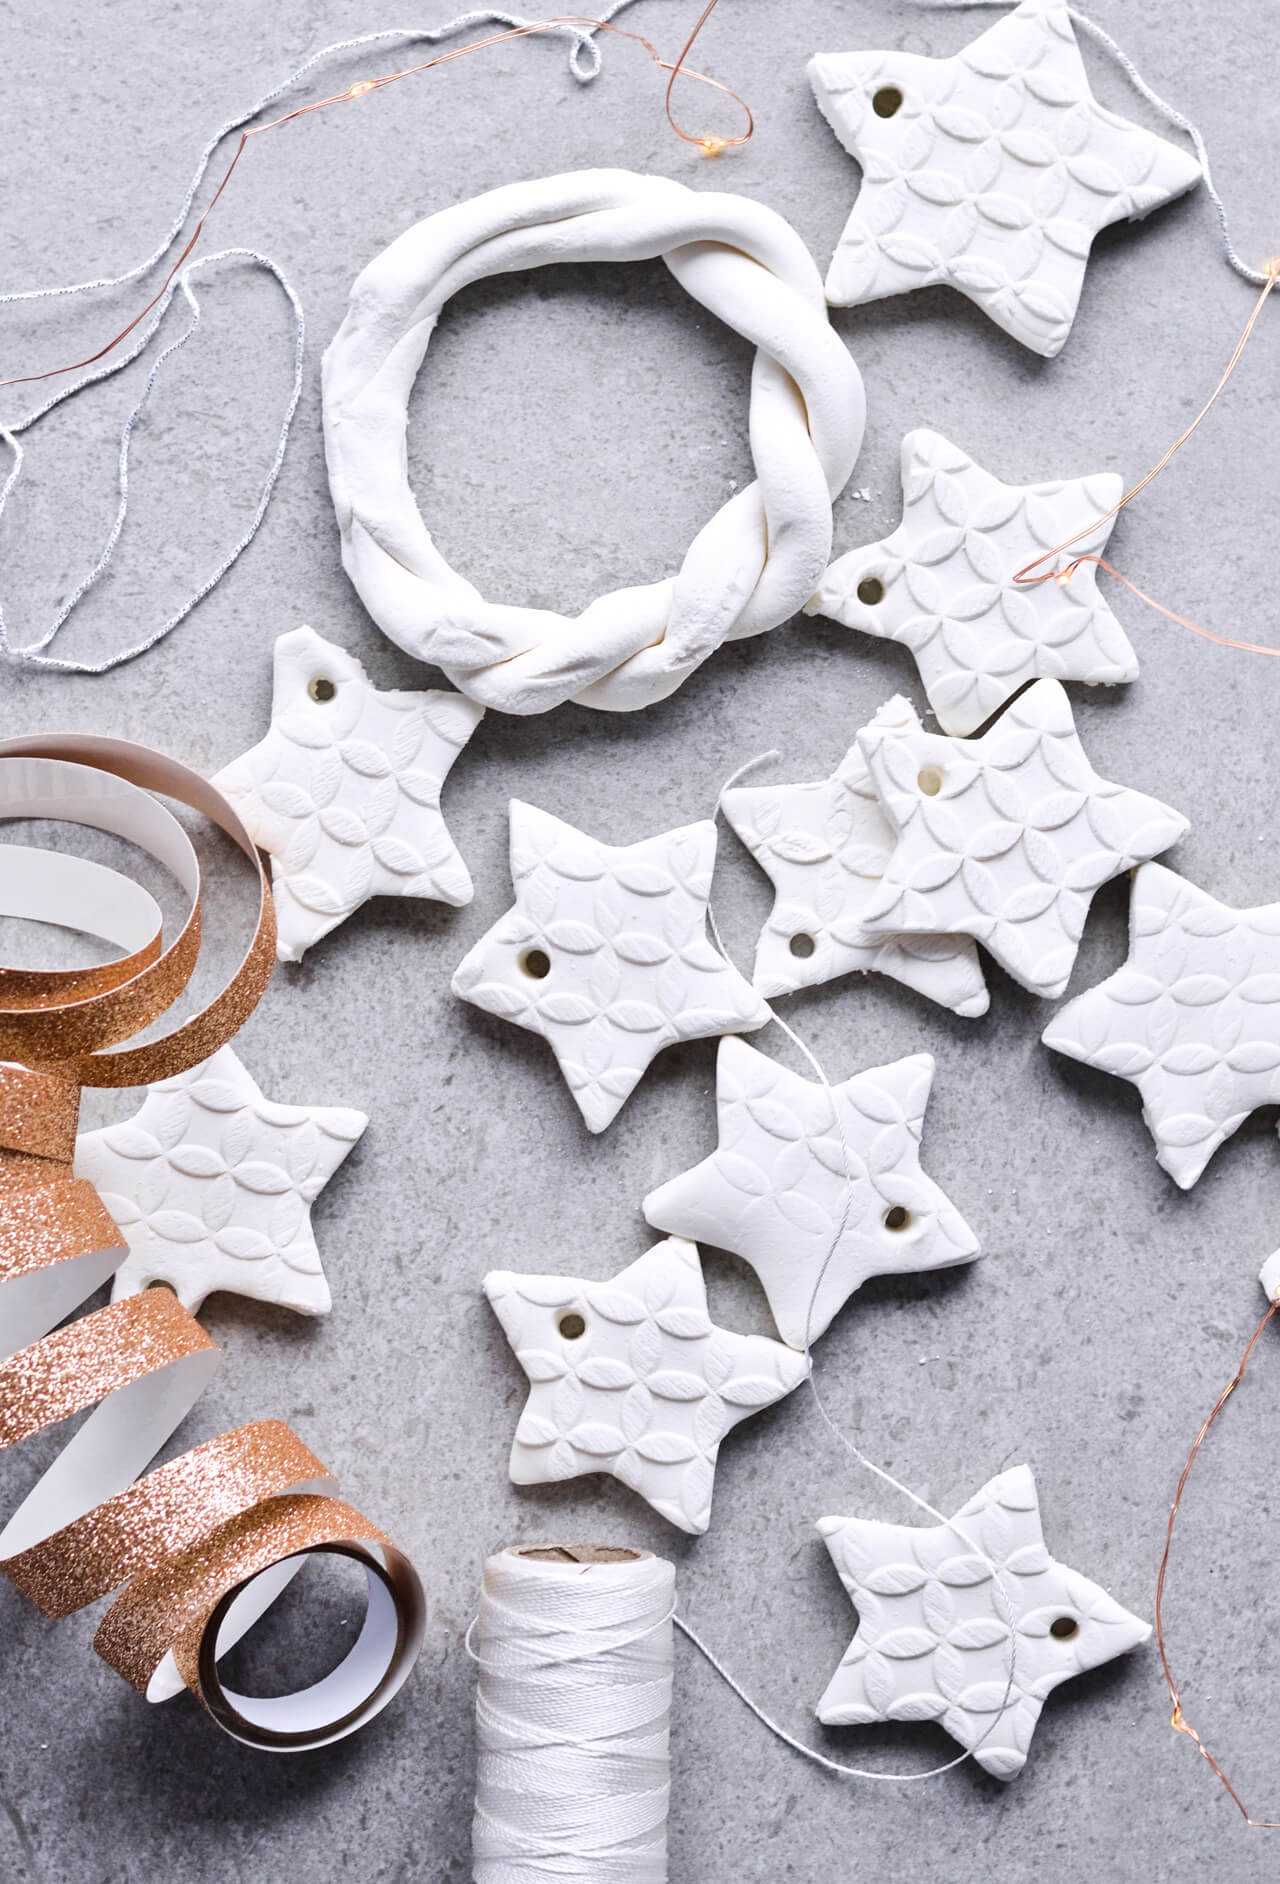 Simple tutorial for homemade scented baking soda ornaments. Easy to make, affordable ornaments that are snow-white and just the perfect personal touch for Christmas. Scented with cinnamon and orange oils! | sugarsalted.com